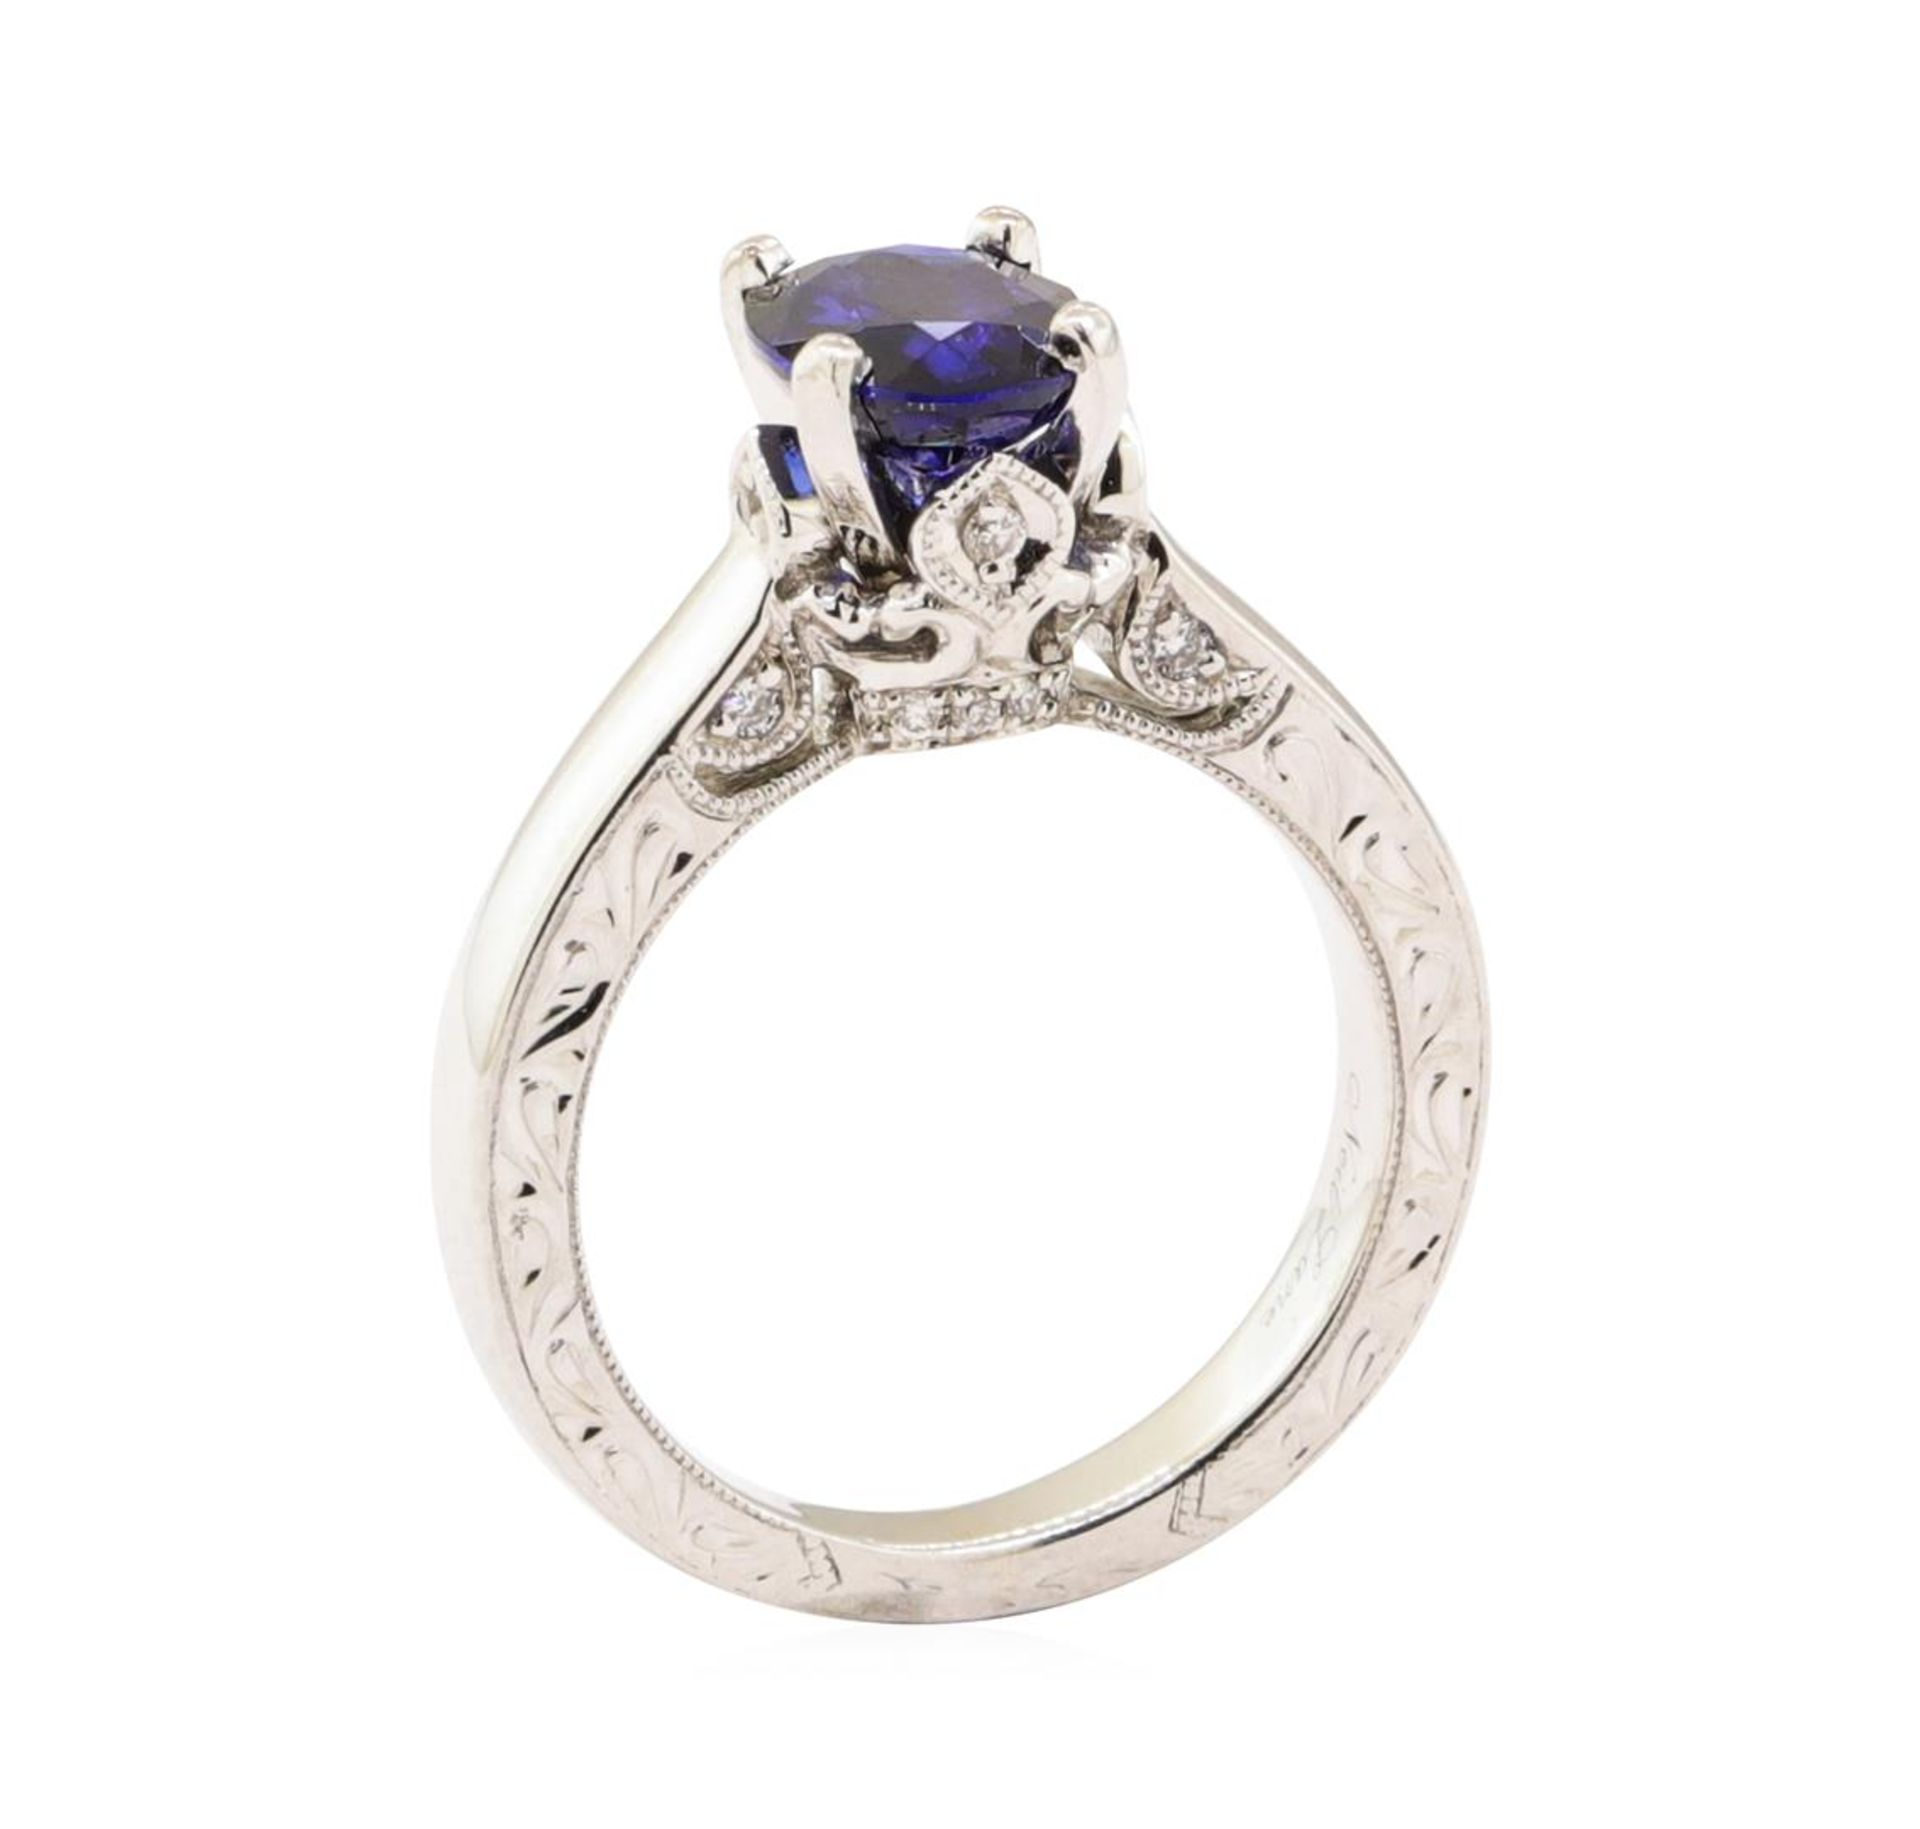 1.66 ctw Blue Sapphire and Diamond Ring - 14KT White Gold - Image 4 of 4